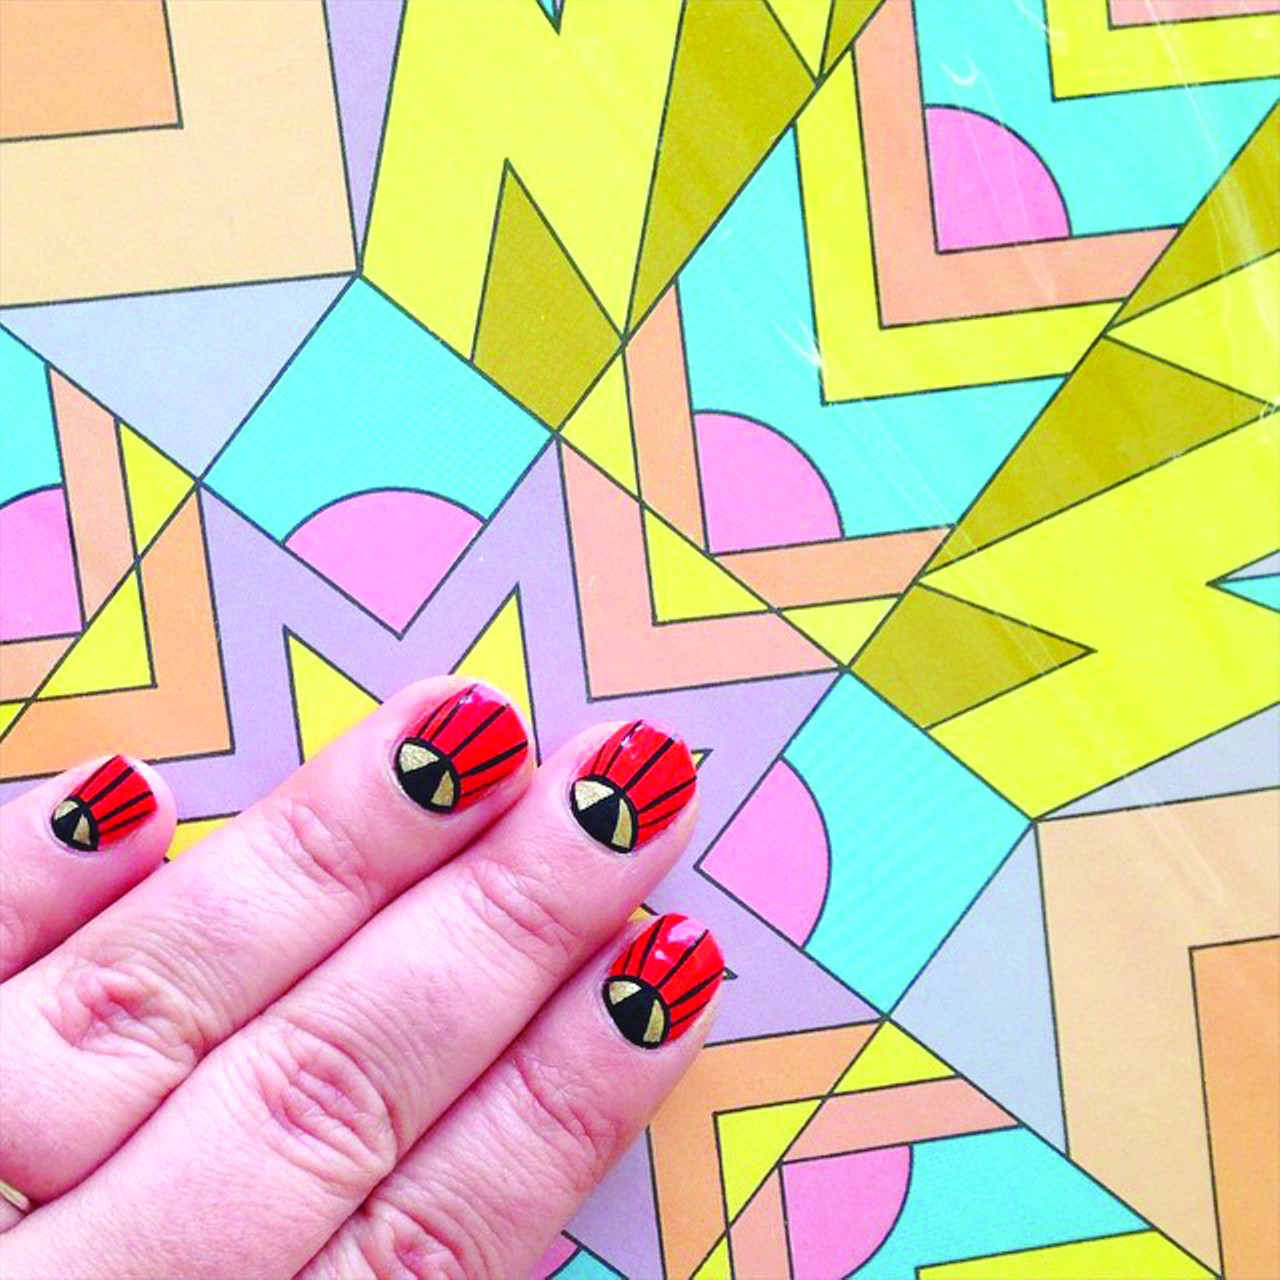 Painting Nails as Art | East Bay Express